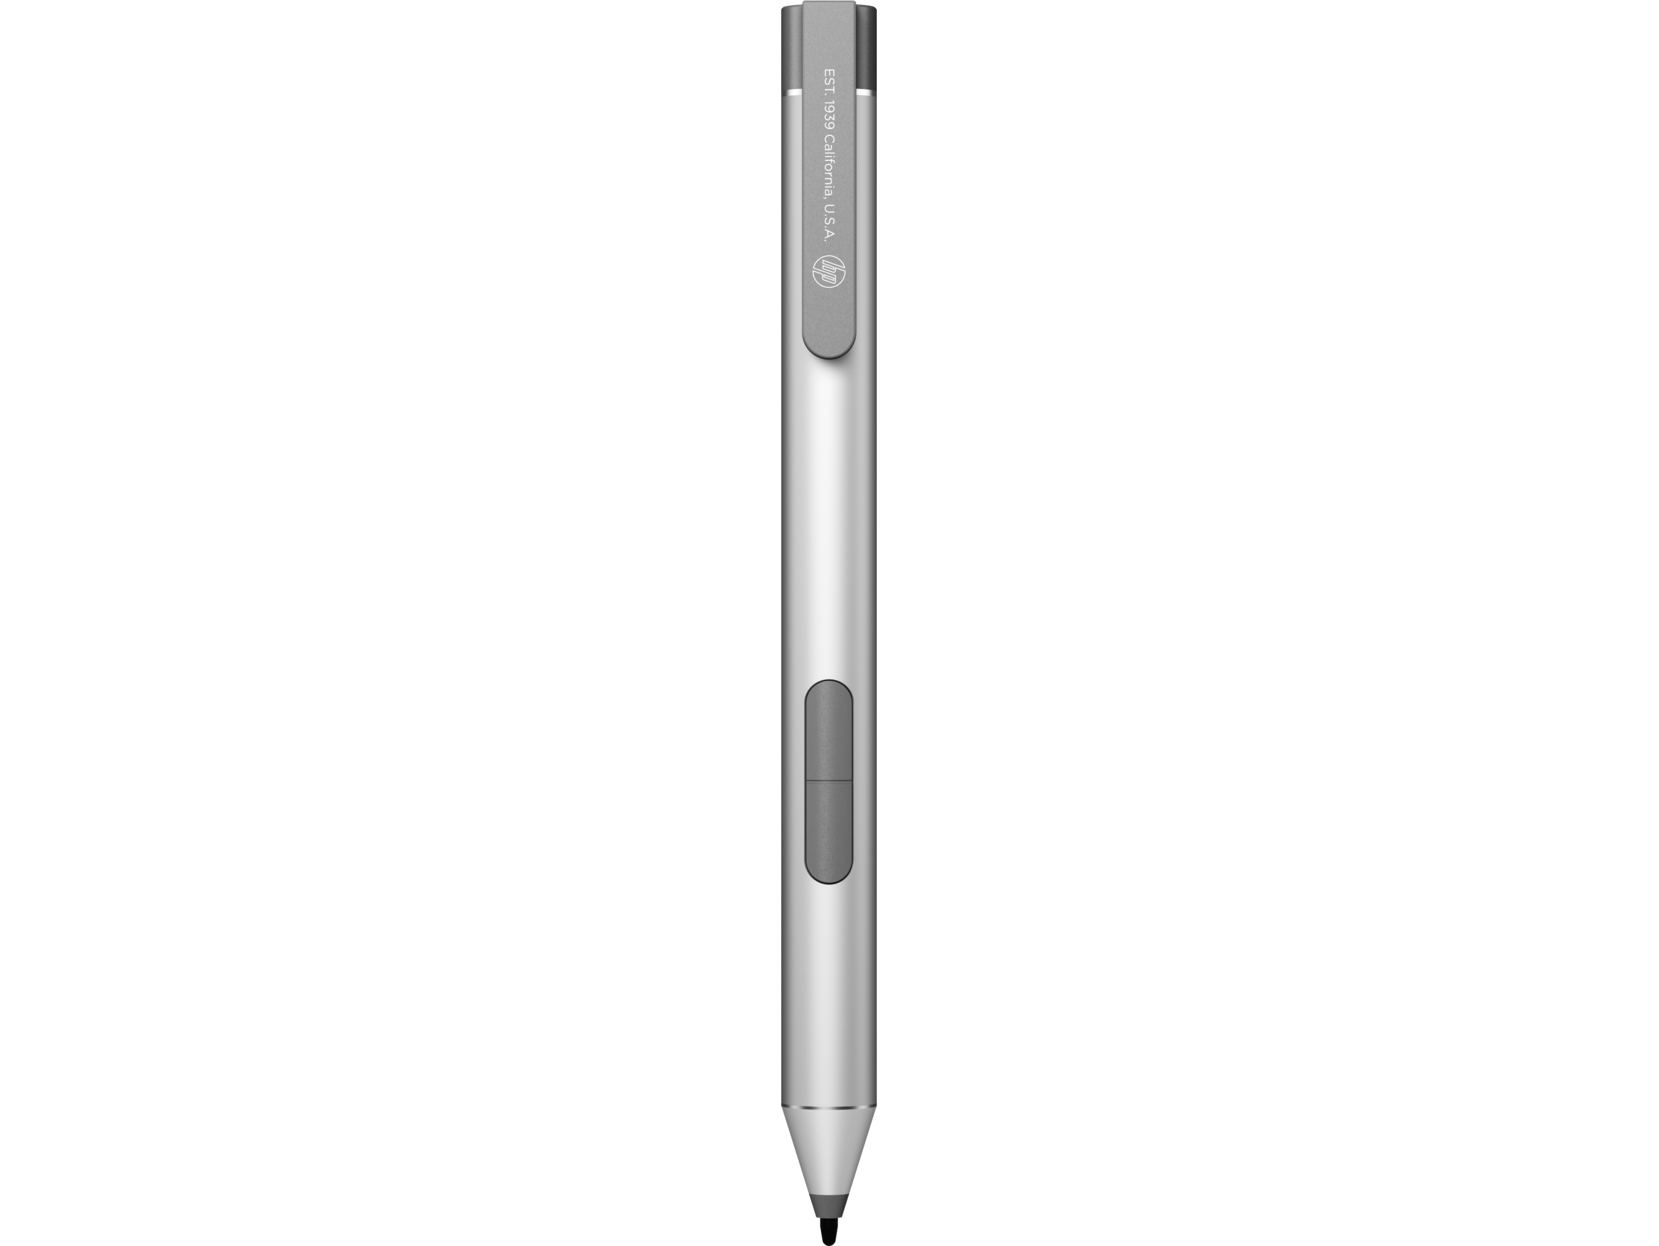 HP Active Pen with Spare Tips stylus pen